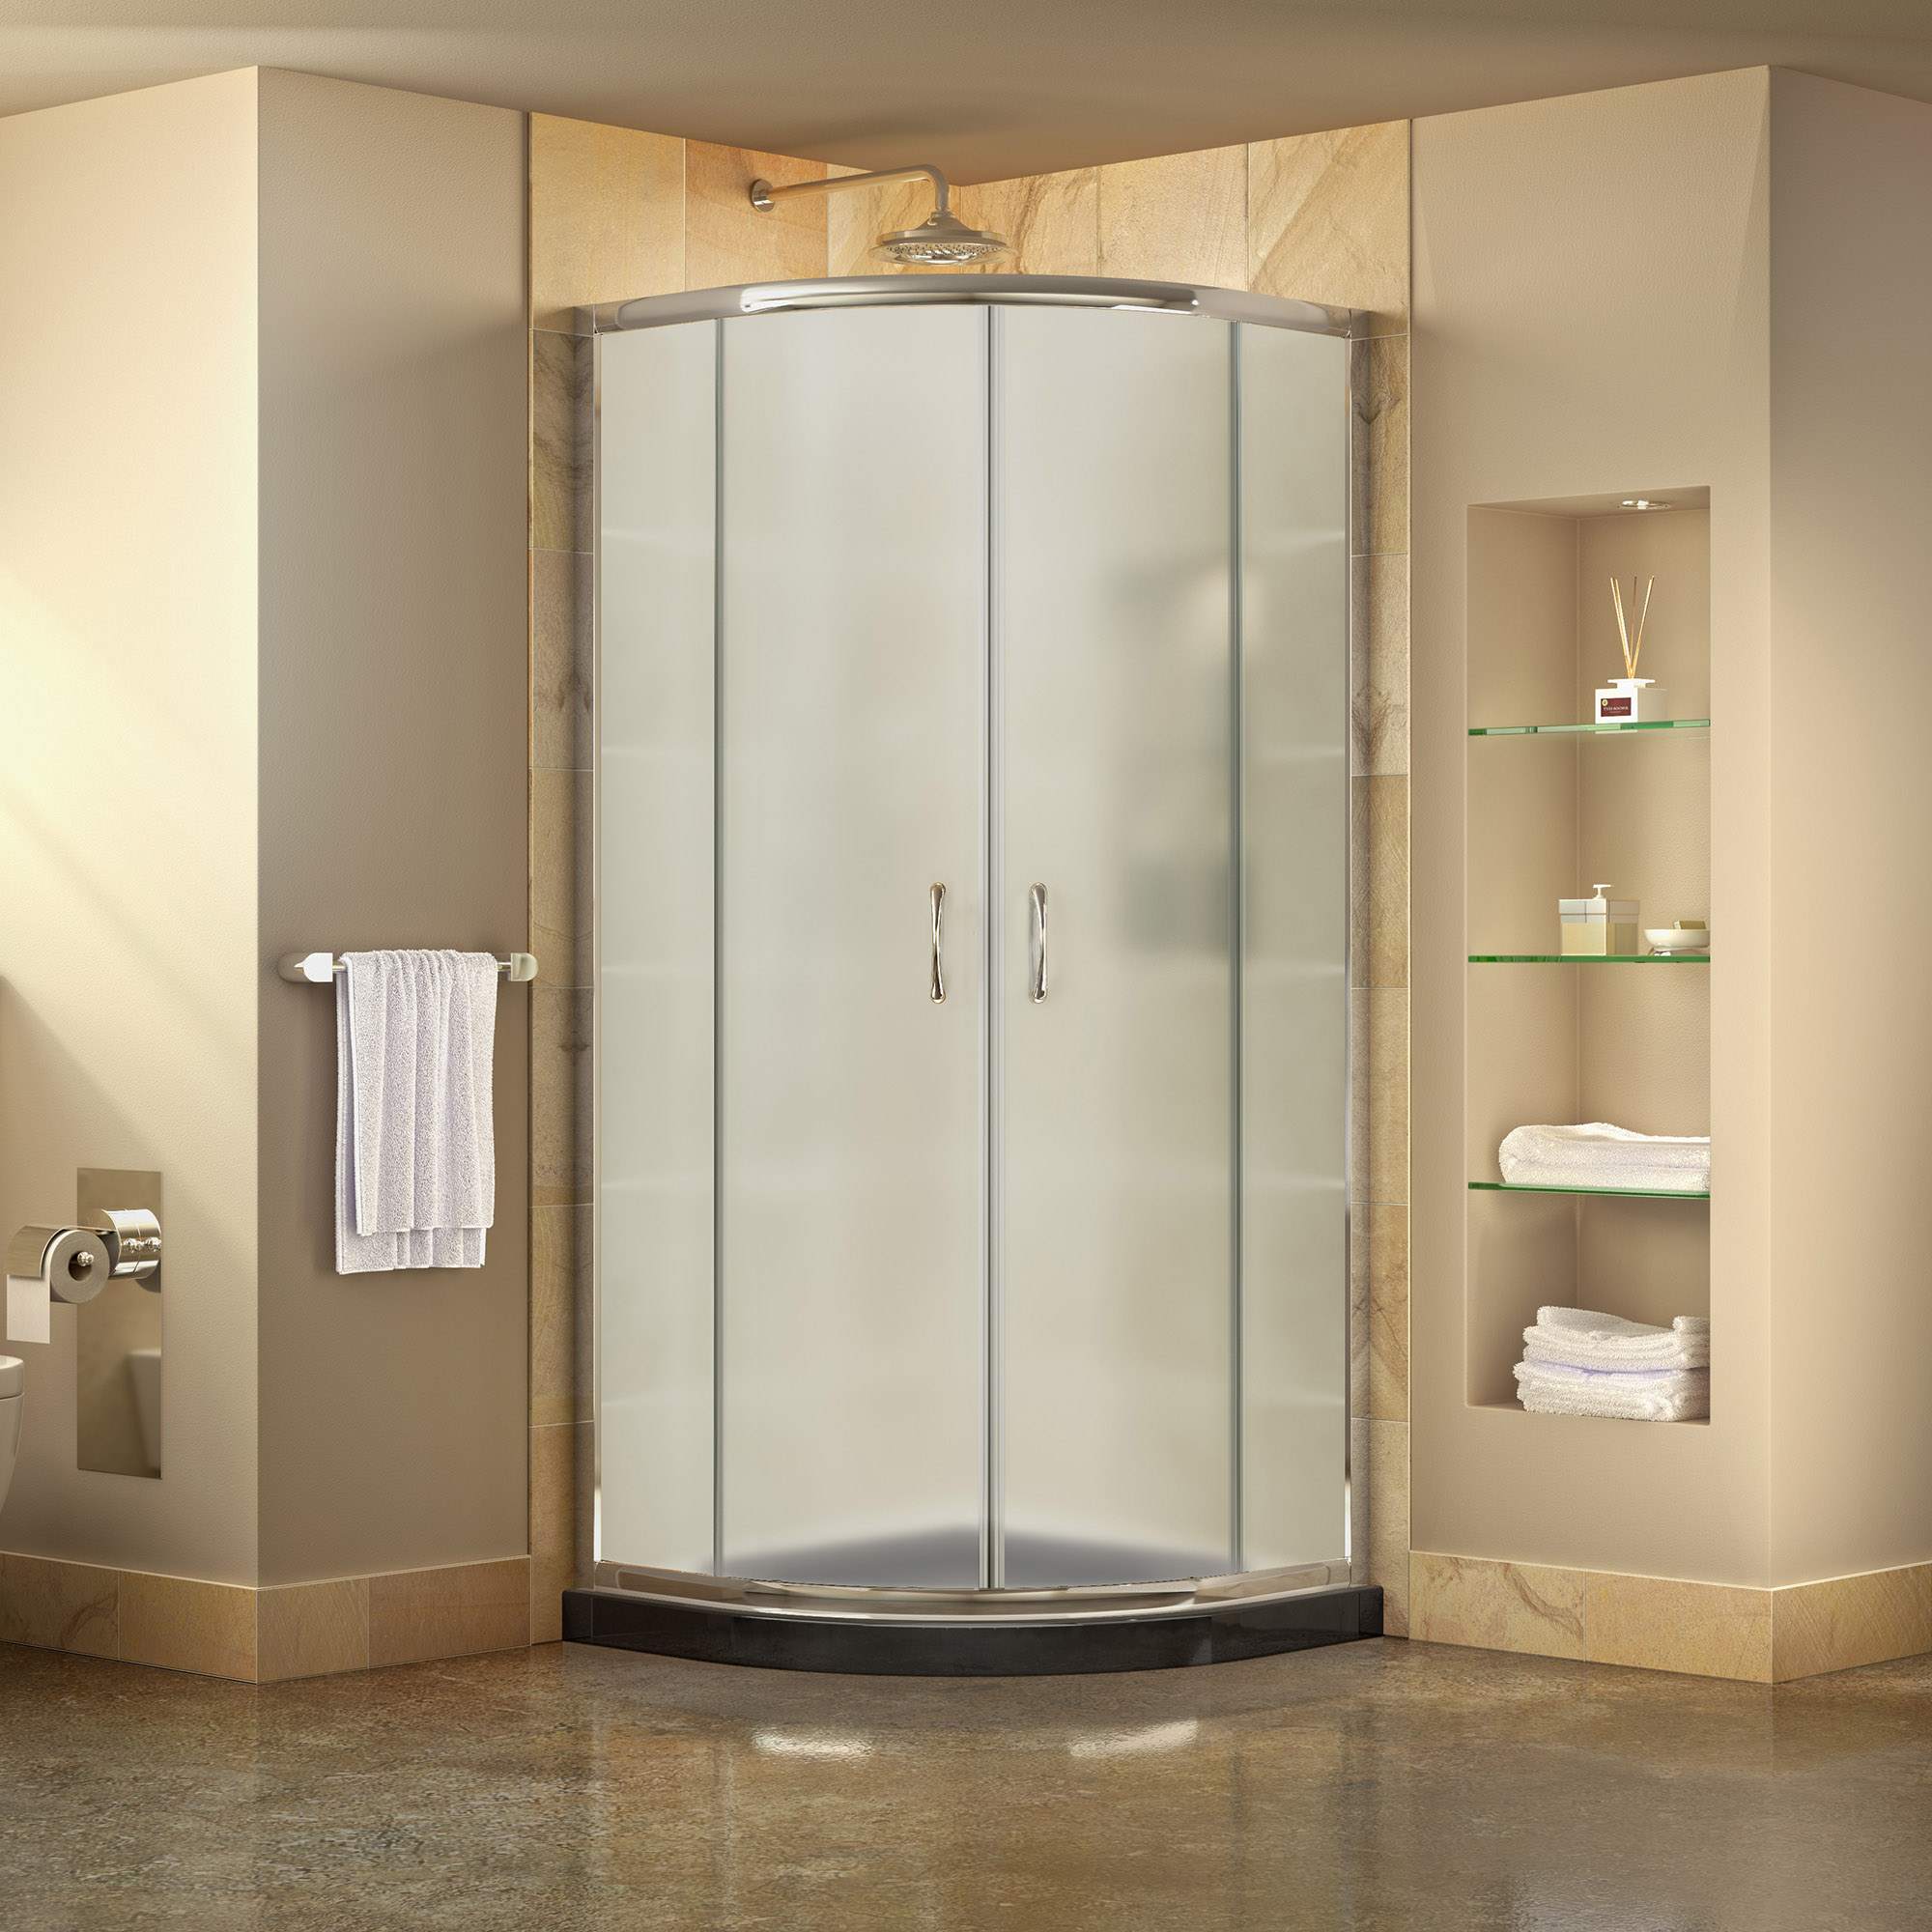 "Prime 34 3/8"" by 34 3/8"" Frameless Sliding Shower Enclosure, Base & QWALL-4 Shower Backwall Kit"